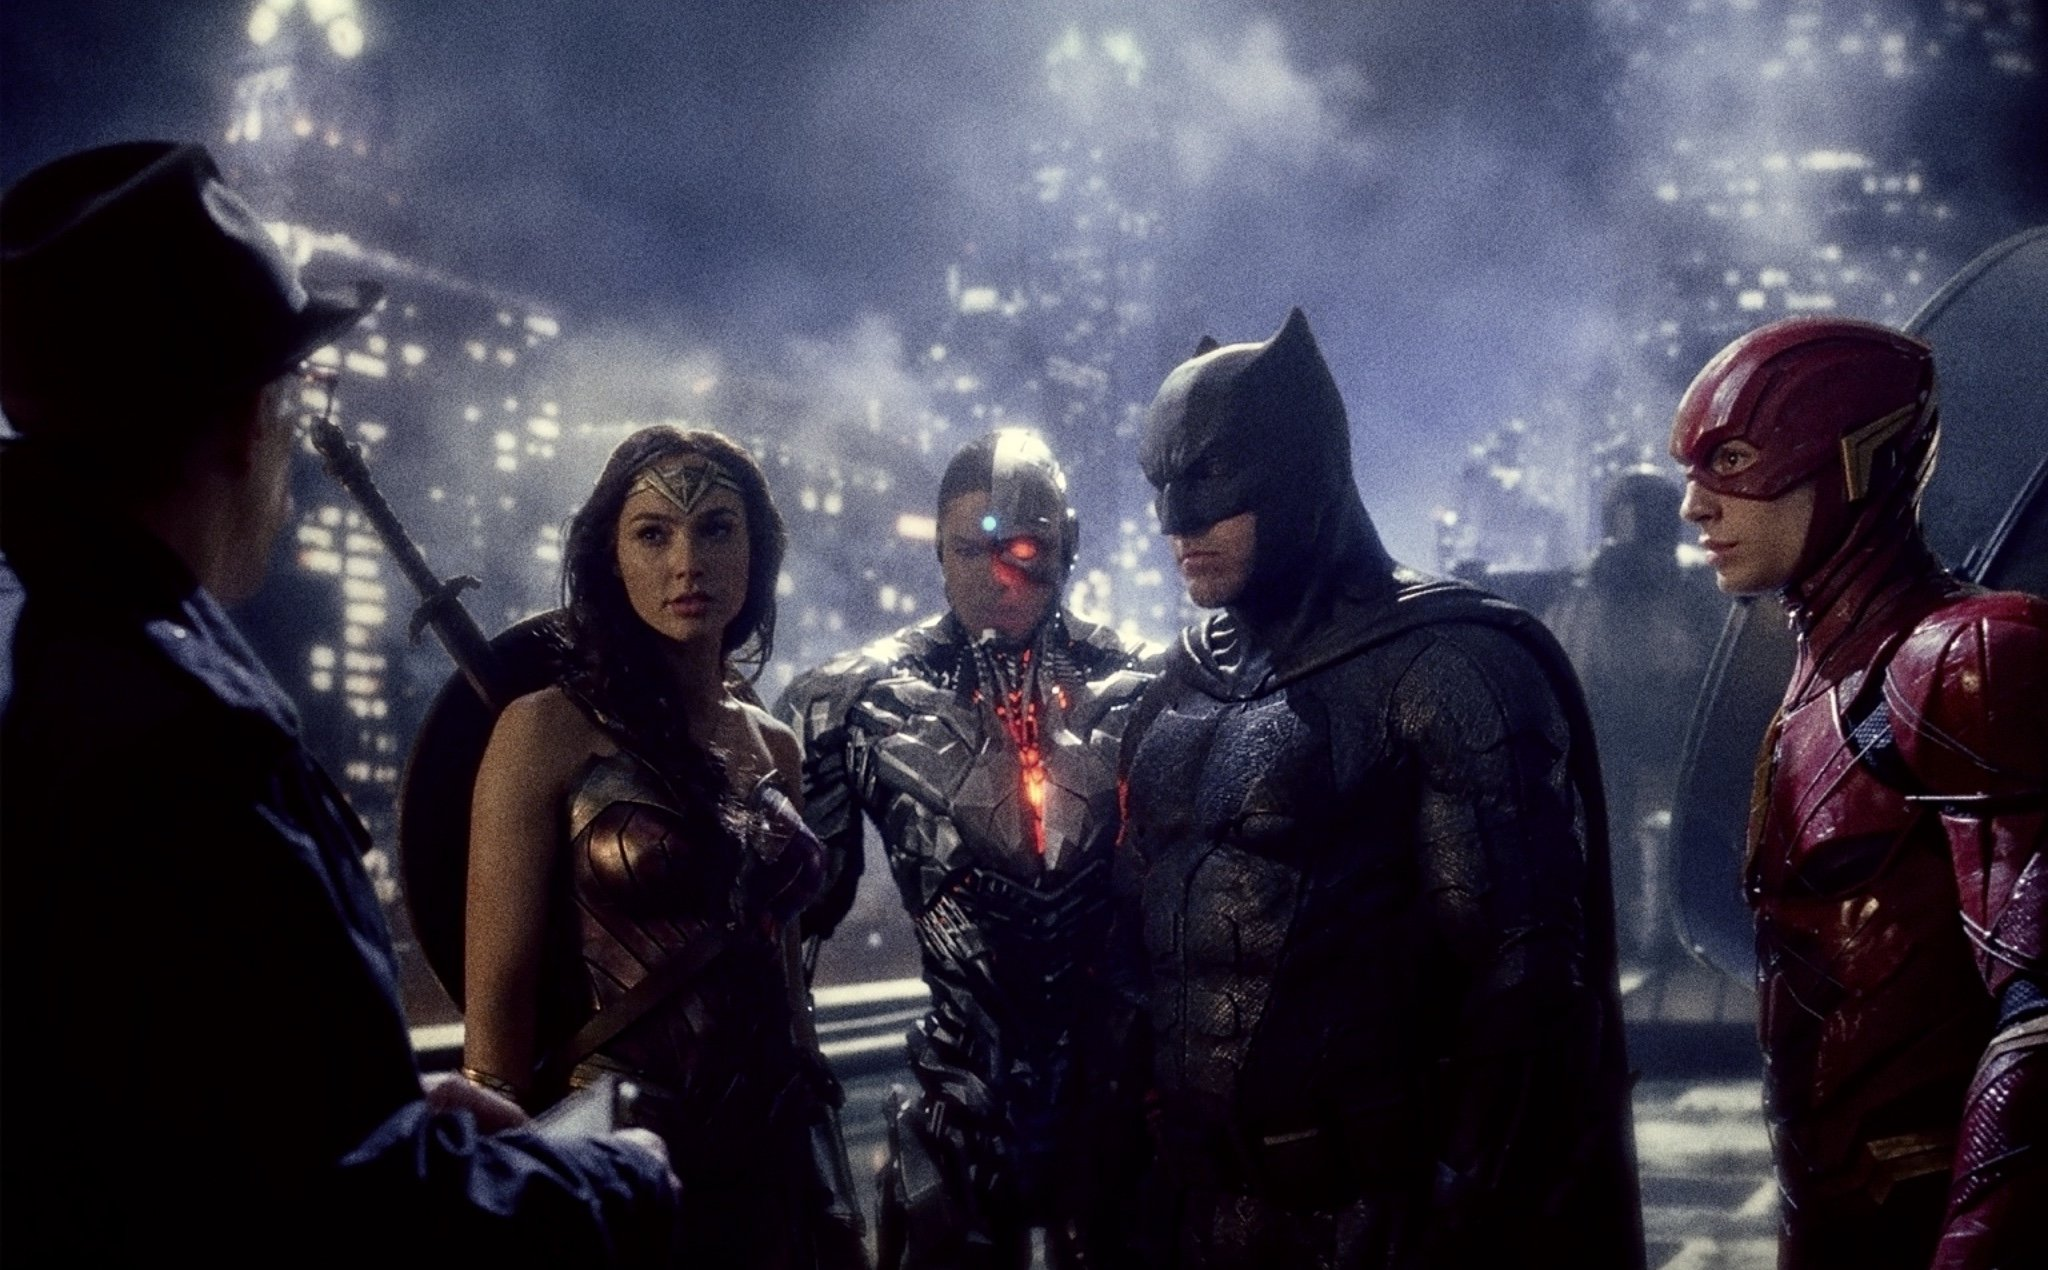 Justice League 2: Justice League 2 Release Date, Story and all Updates